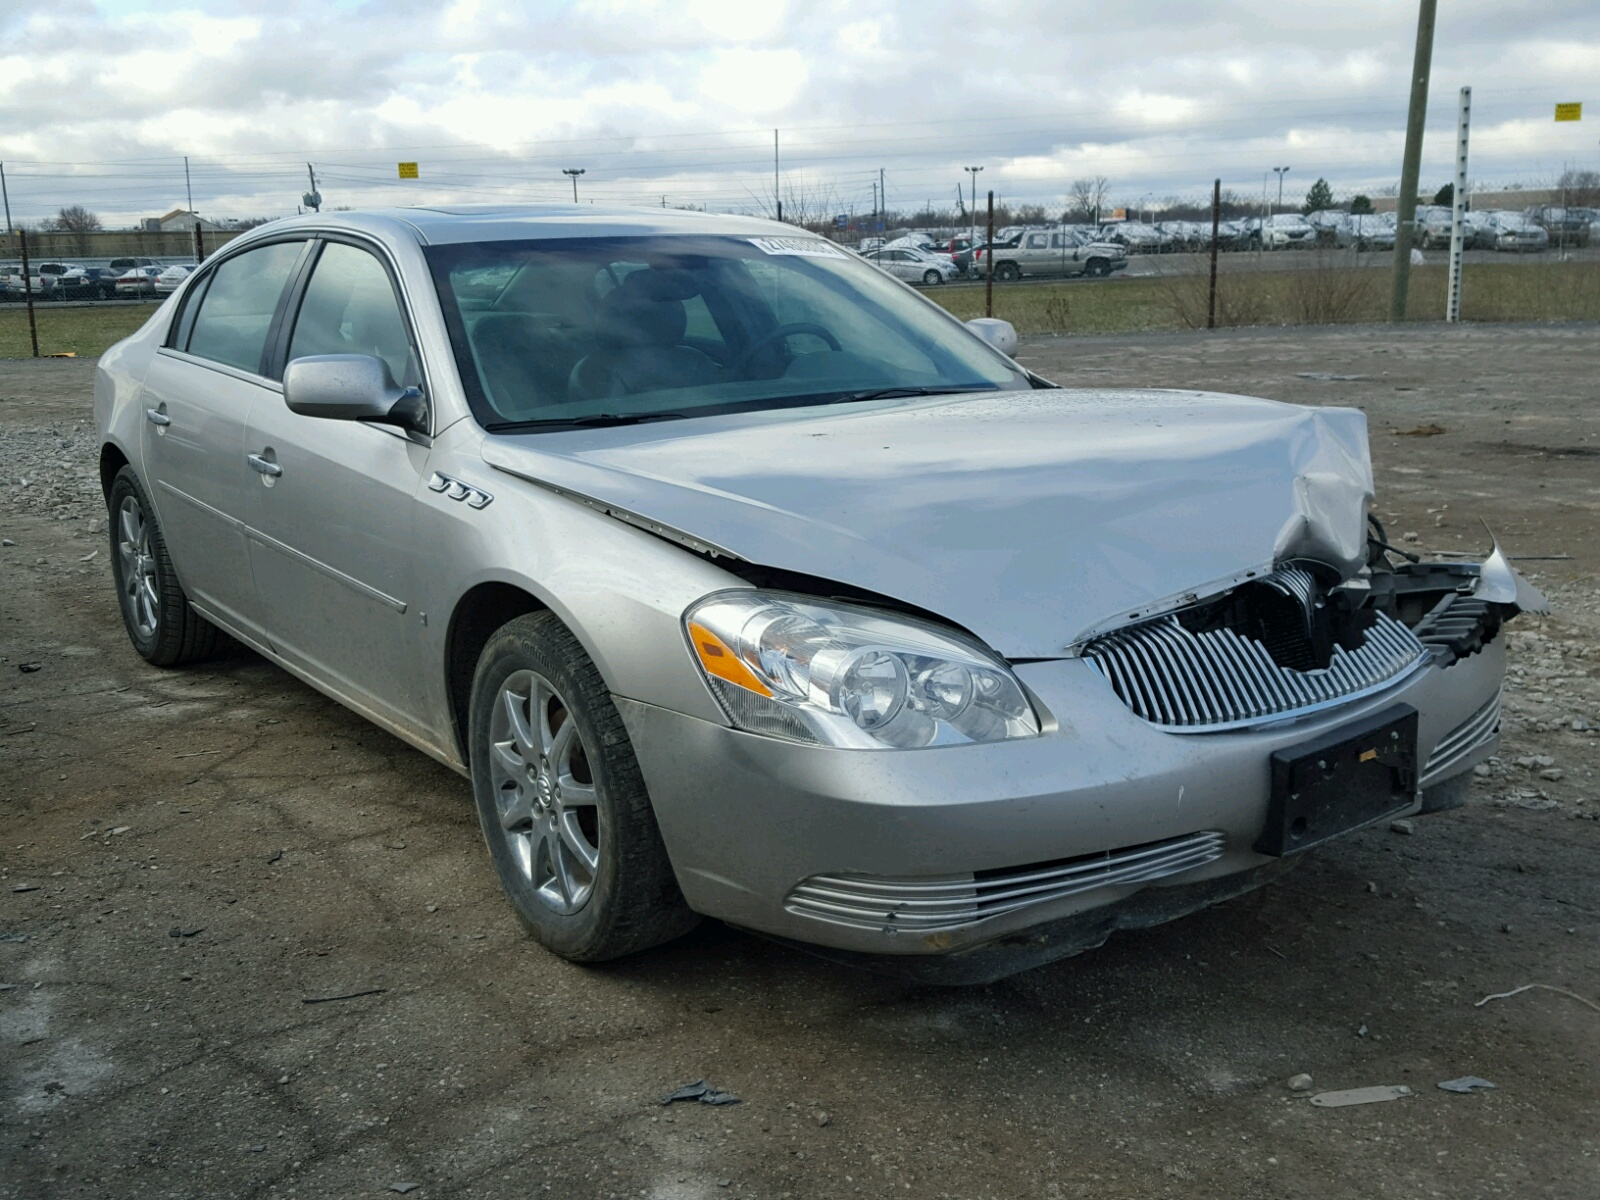 salvage cert copart sale of en carfinder in buick for auctions on auto lot minneapolis online silver mn lucerne cx title